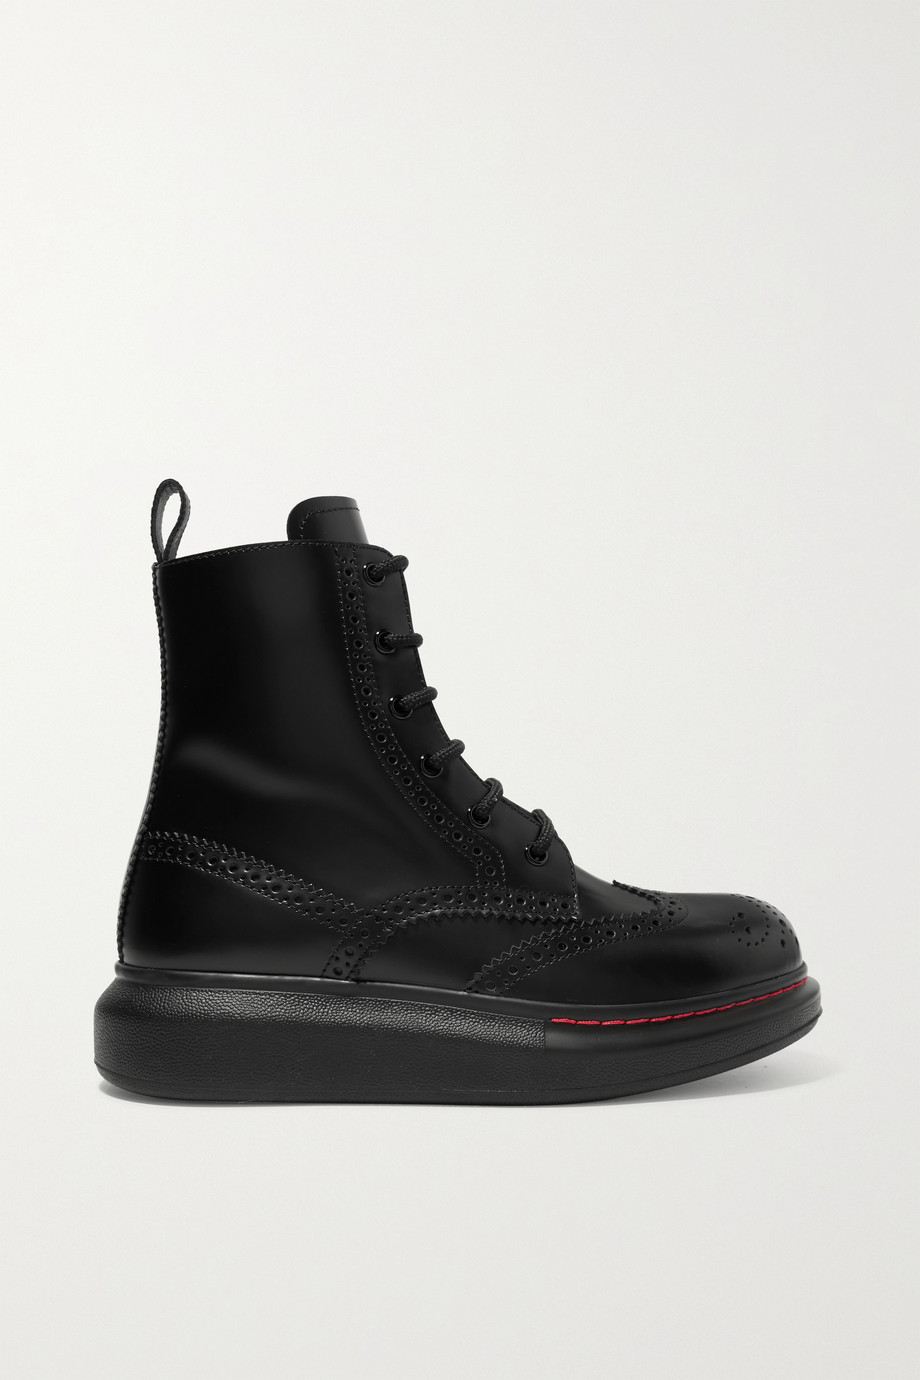 ALEXANDER MCQUEEN Leather exaggerated-sole ankle boots